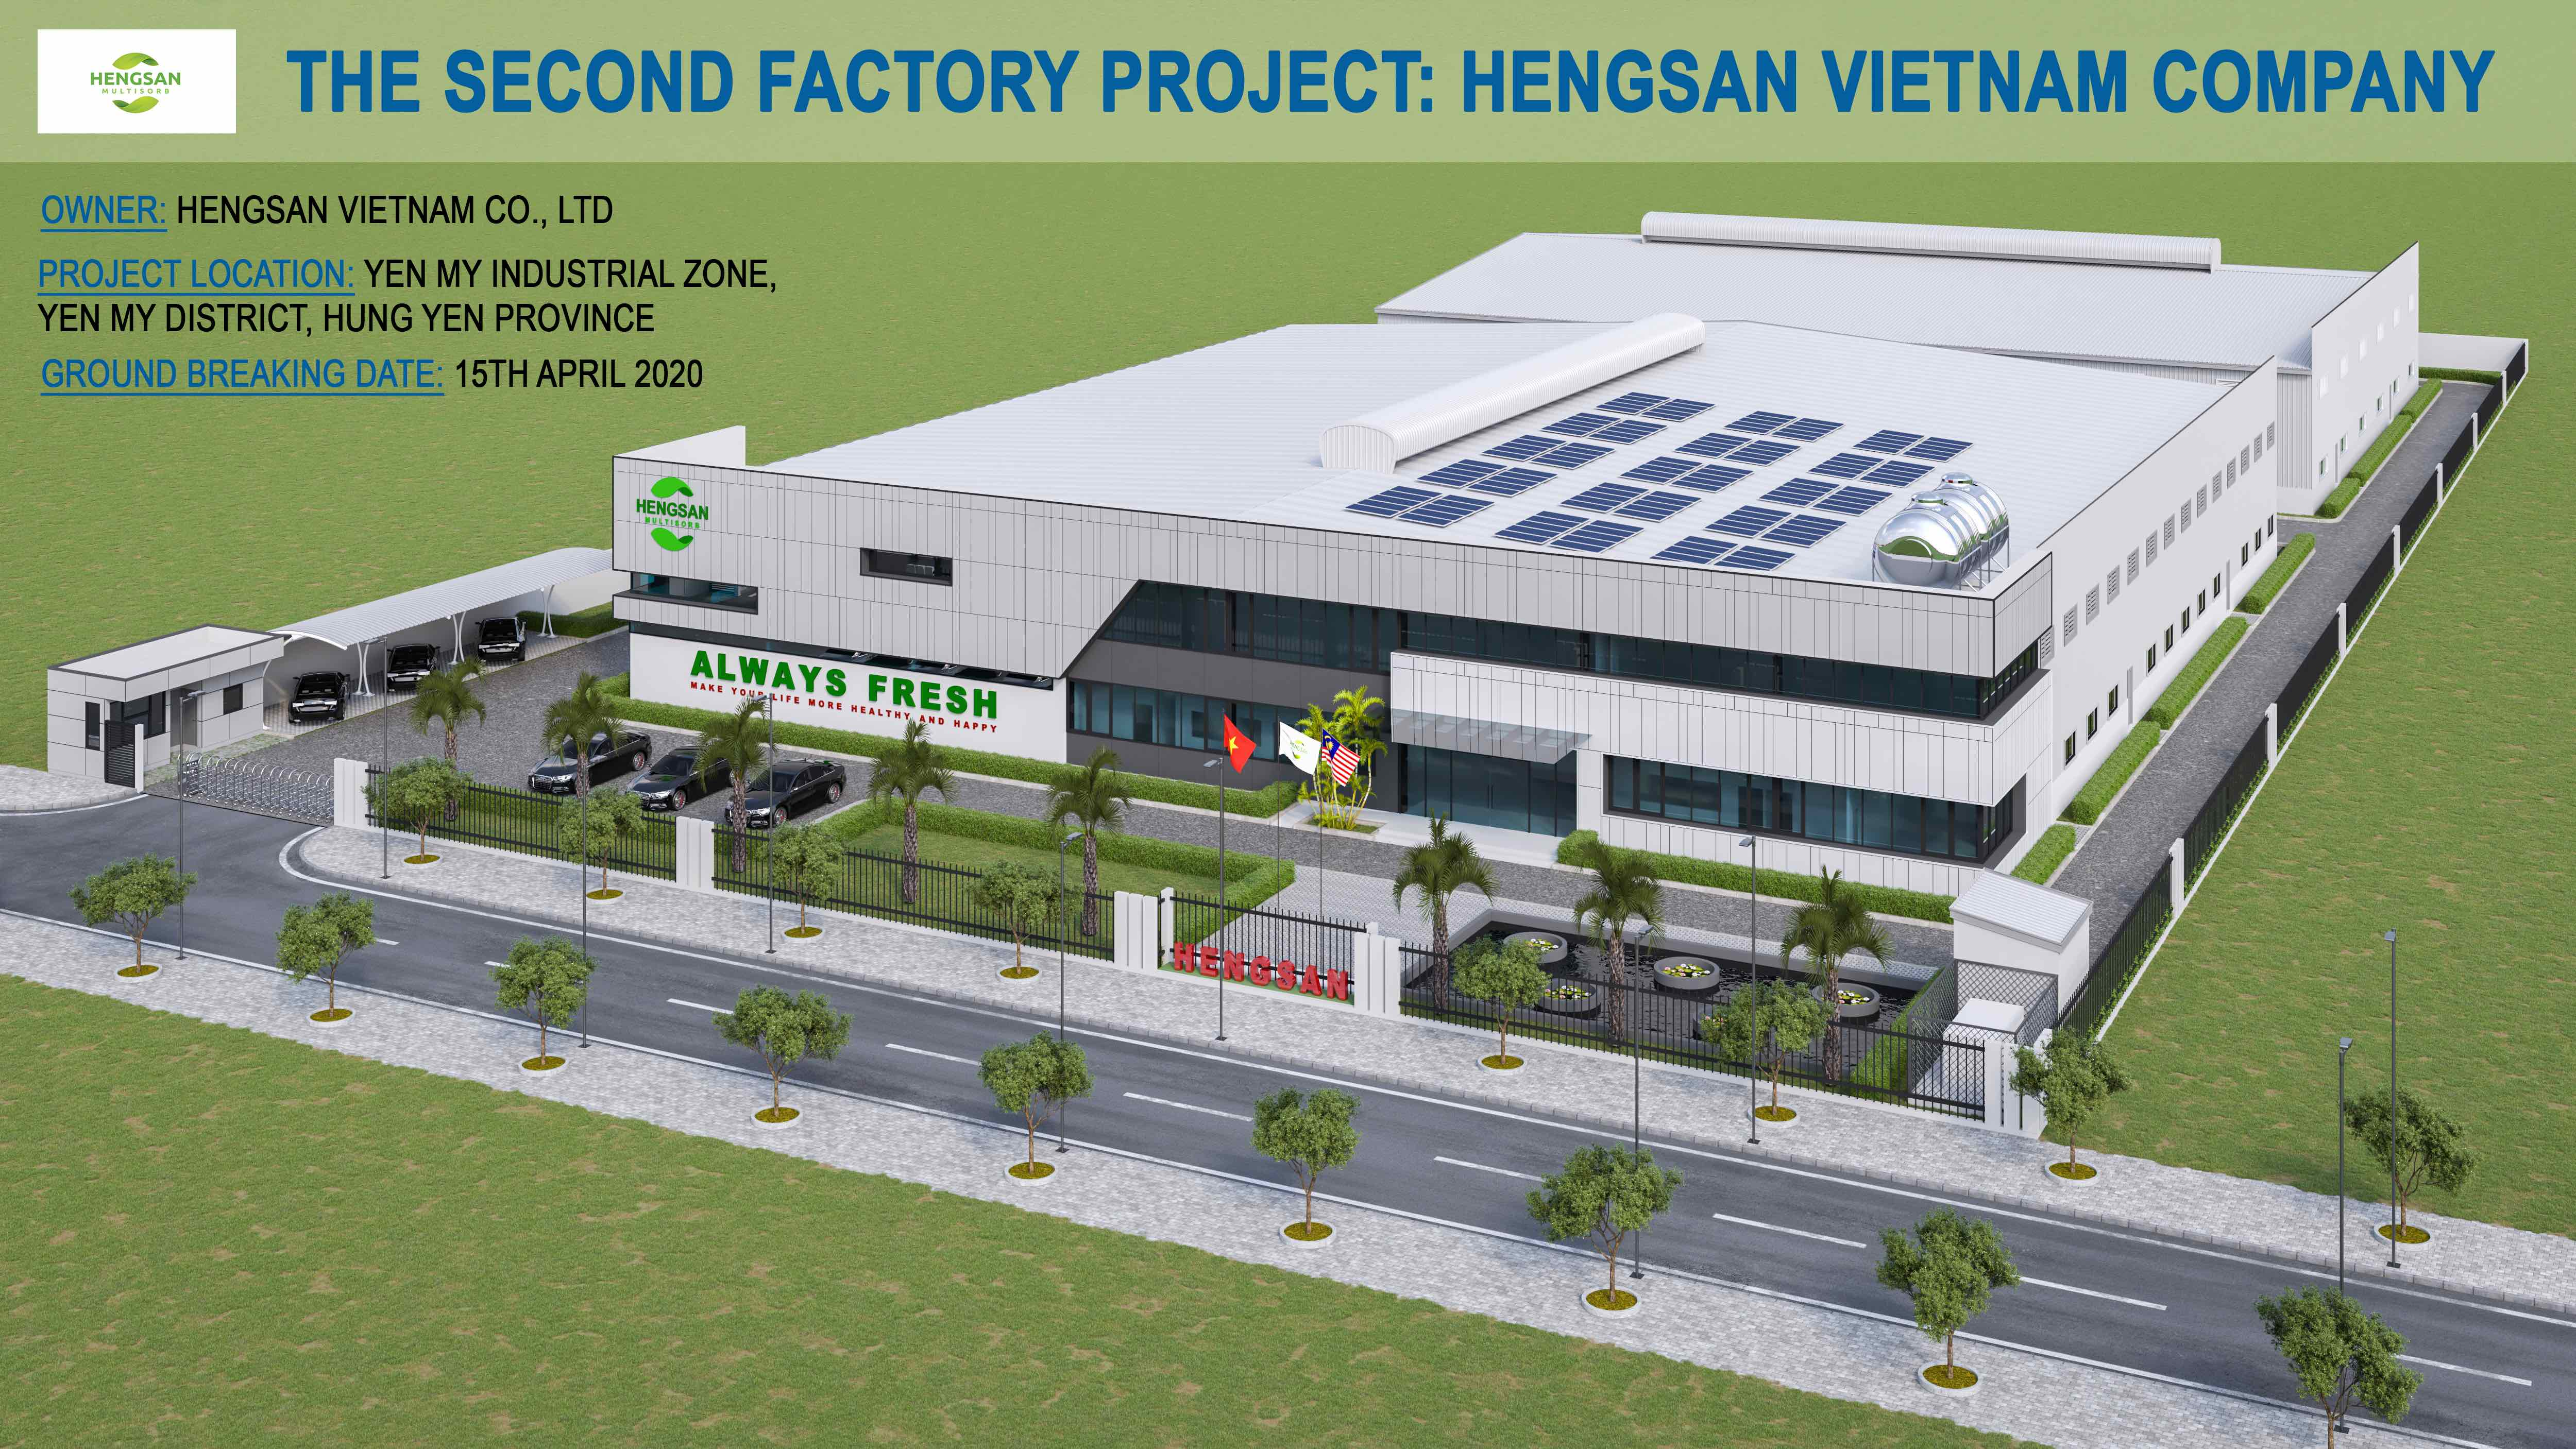 The Second Factory Project: Hengsan Viet Nam Company